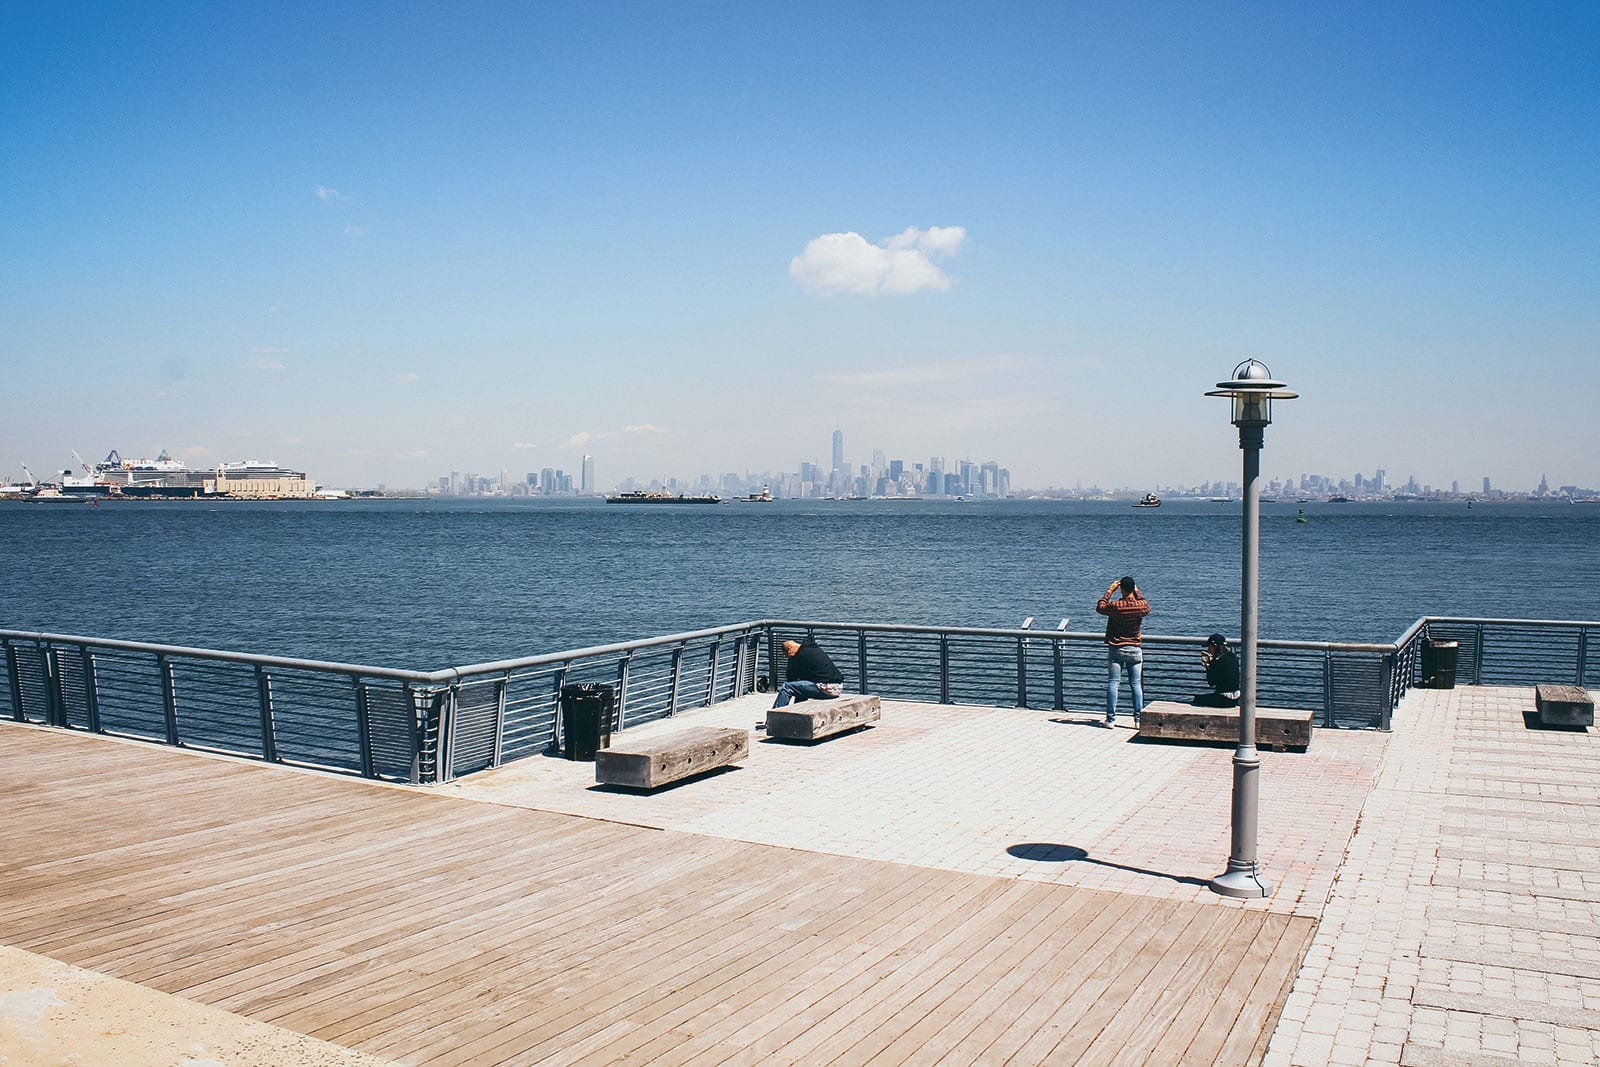 Things To Do in Staten Island | The Ultimate 2019 Guide • on ocean drive south beach map, south beach tourist map, long island new york city map, south beach ny map, south beach martha's vineyard map, south beach california map, south beach florida map, south beach new york city, south beach san francisco map, south beach boardwalk, south beach cape cod map, virginia beach boardwalk map,